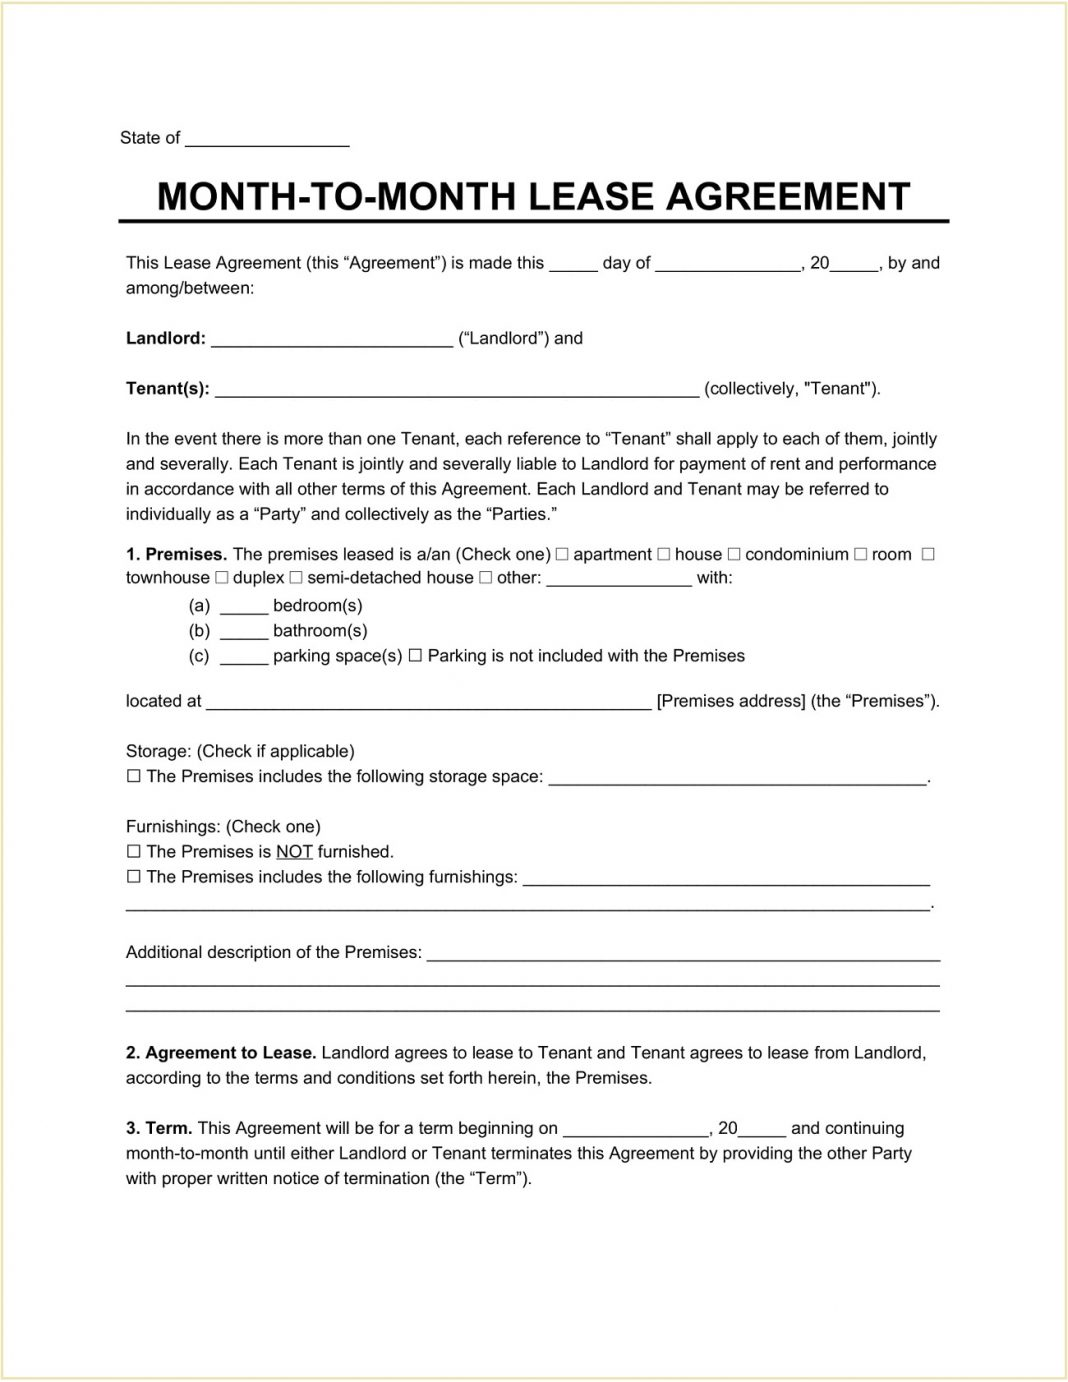 Month To Residential Lease Agreement Template Word How Fill Out A Rental Month-to-month Los Angeles Room 30 Day Notice Commercial  Month-to-Month Sample Large